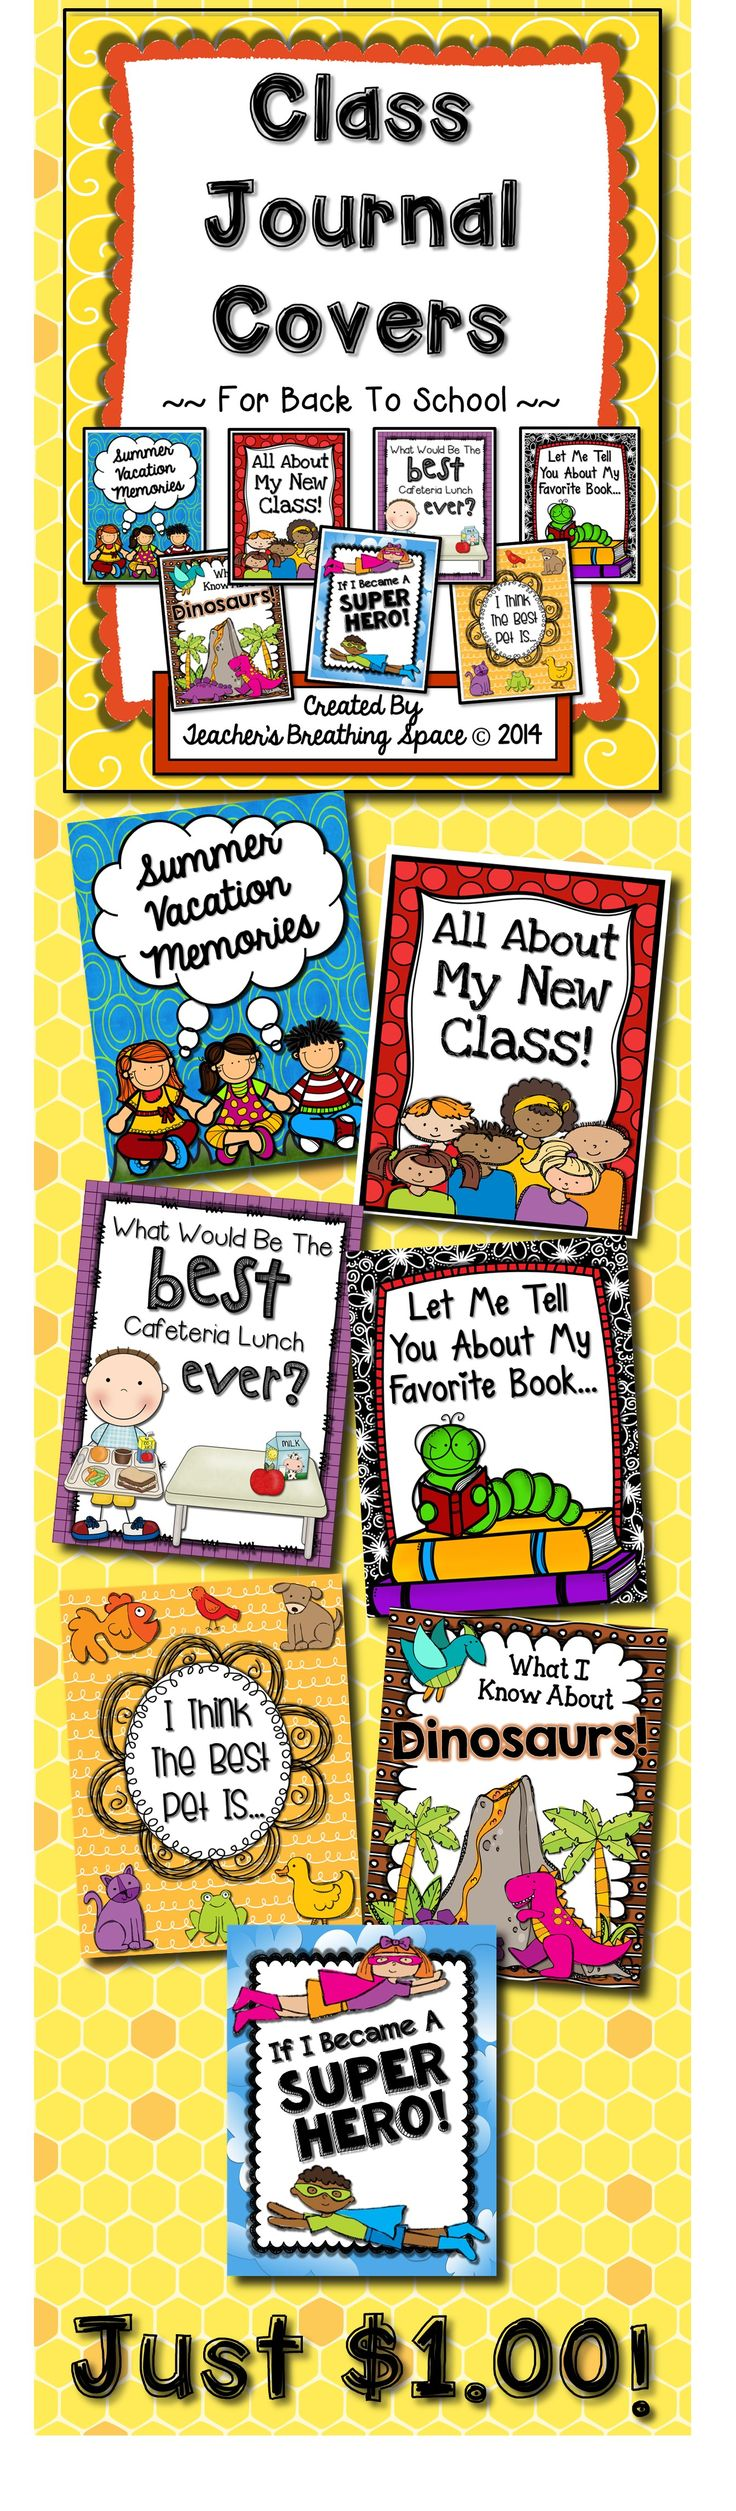 Whole Class Journal Covers for Back-To-School --- Writing Topics for August and September --- Just $1.00!